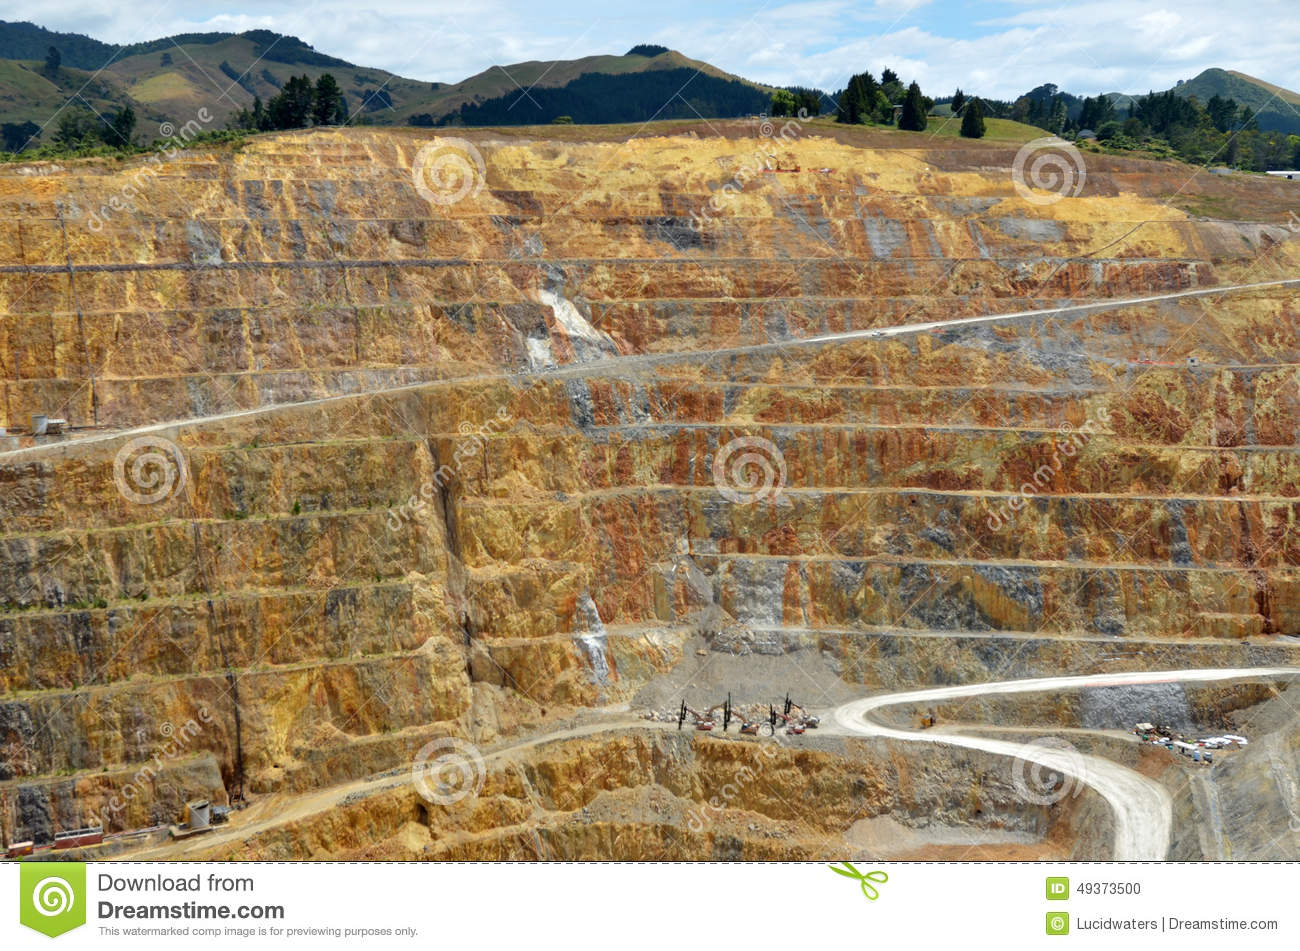 Waihi New Zealand  city photo : WAIHI, NZL JAN 19 2015:Martha Gold Mine in Waihi. It's one of the ...